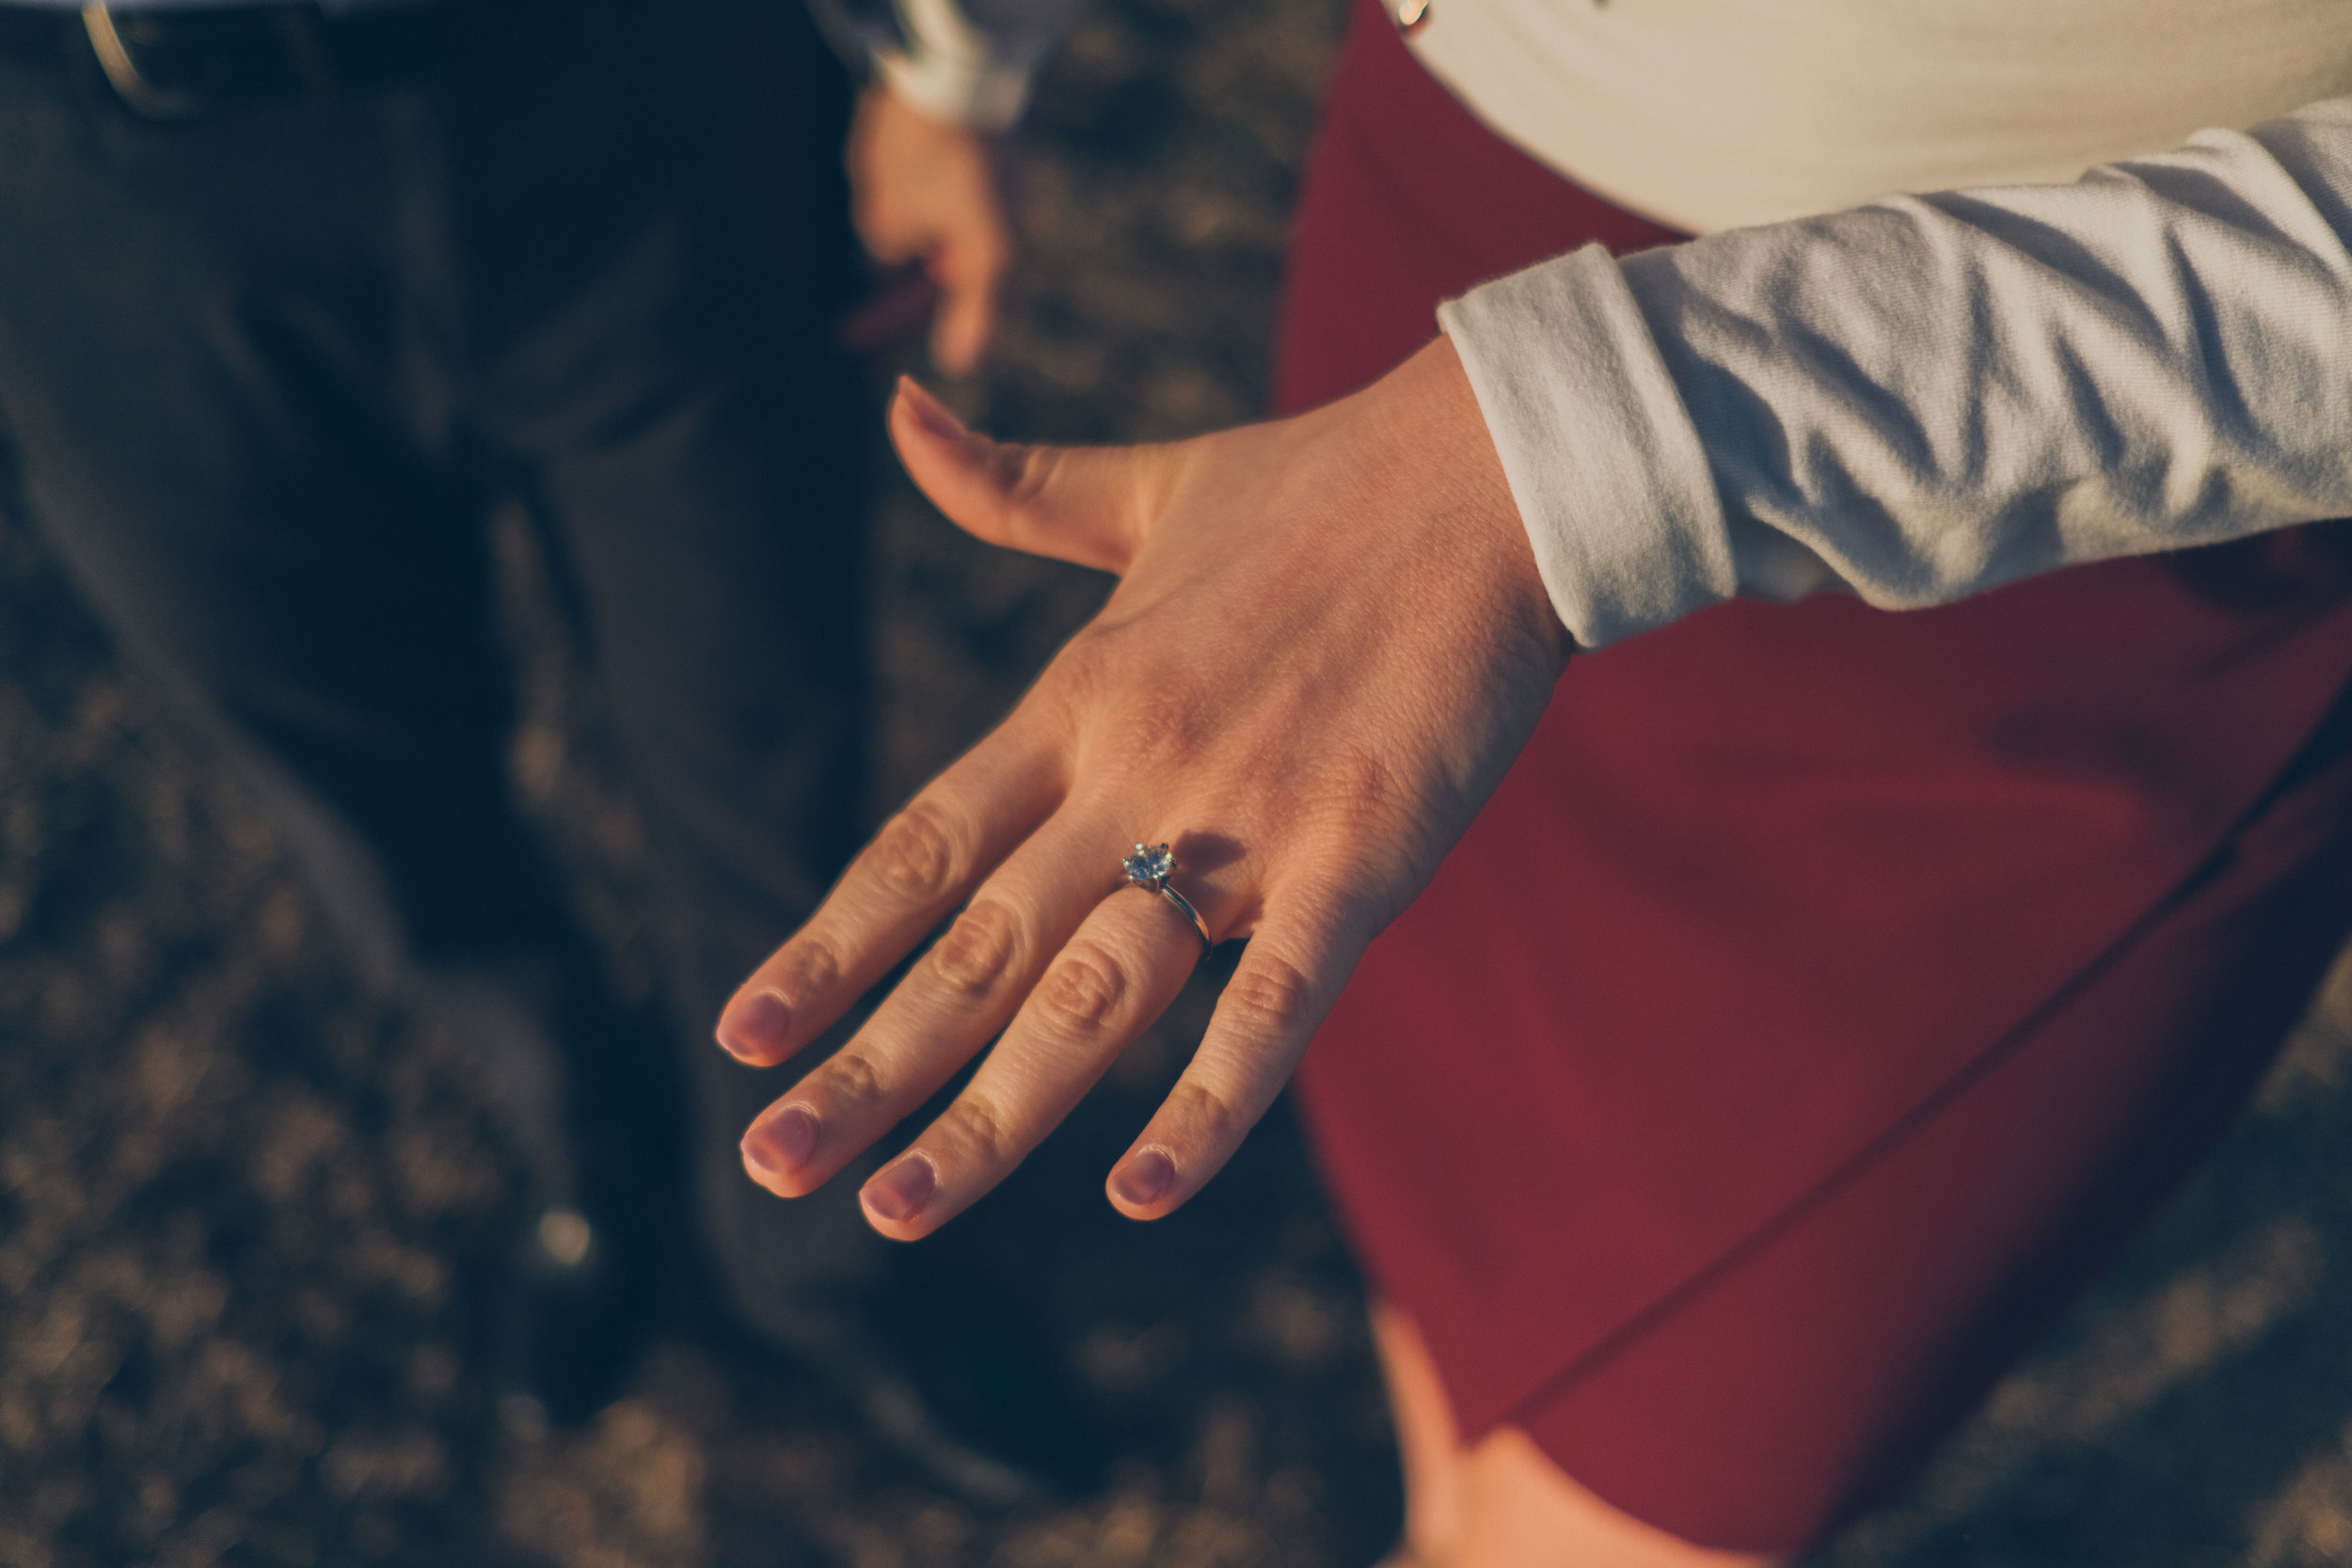 Woman's left hand from above showing engagement ring.